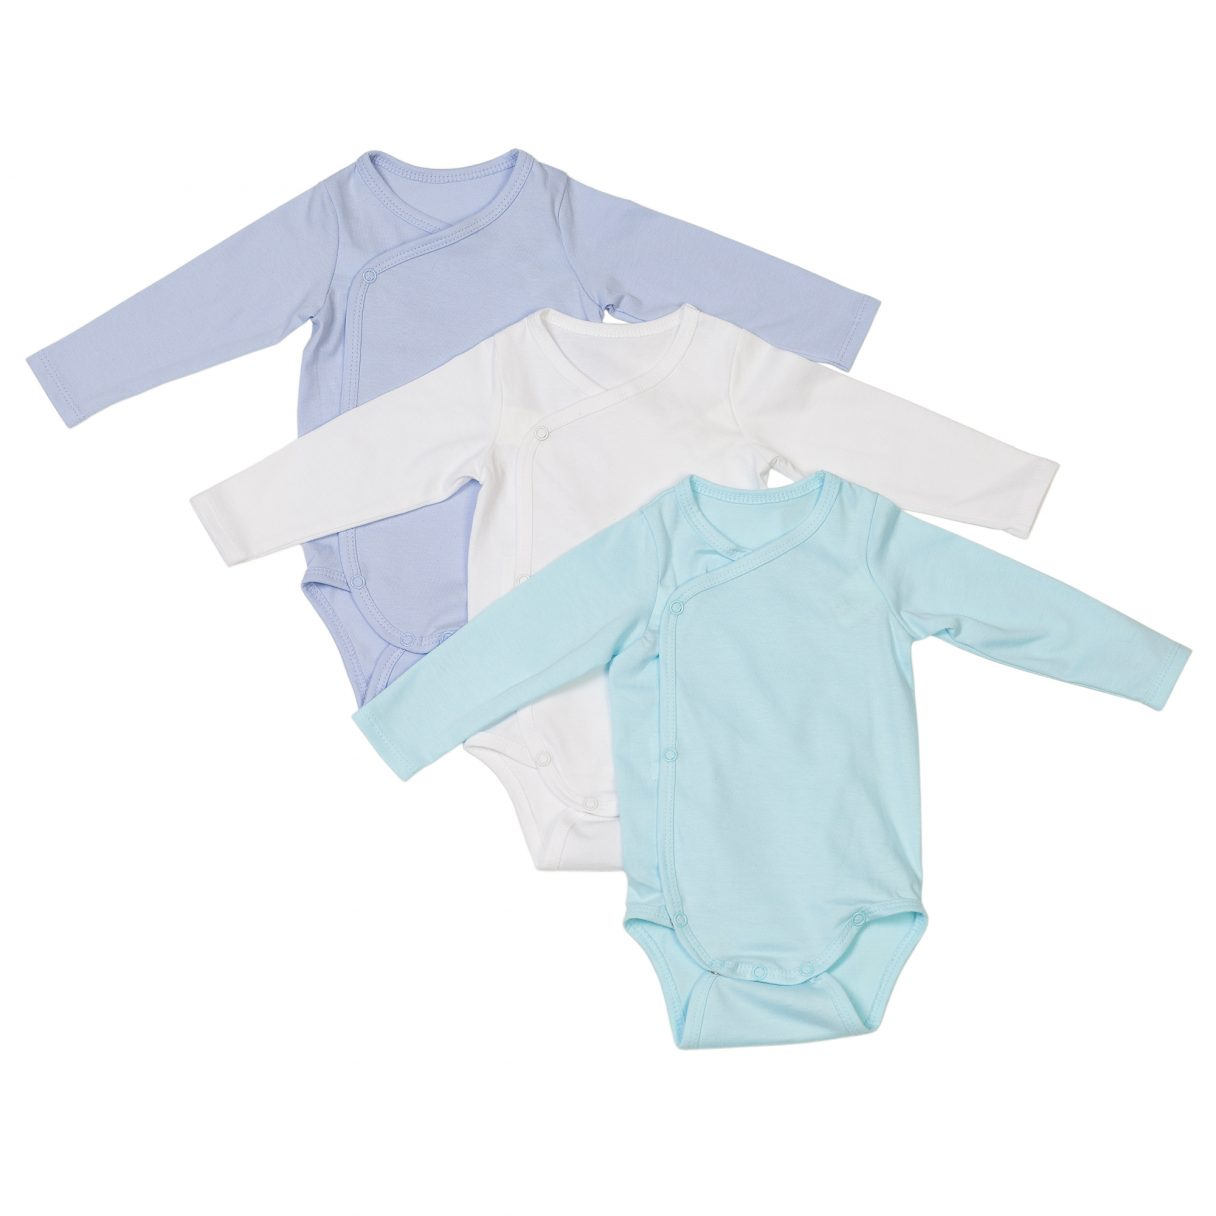 Newborn set of 3 organic cotton baby bodysuits blue white turquoise